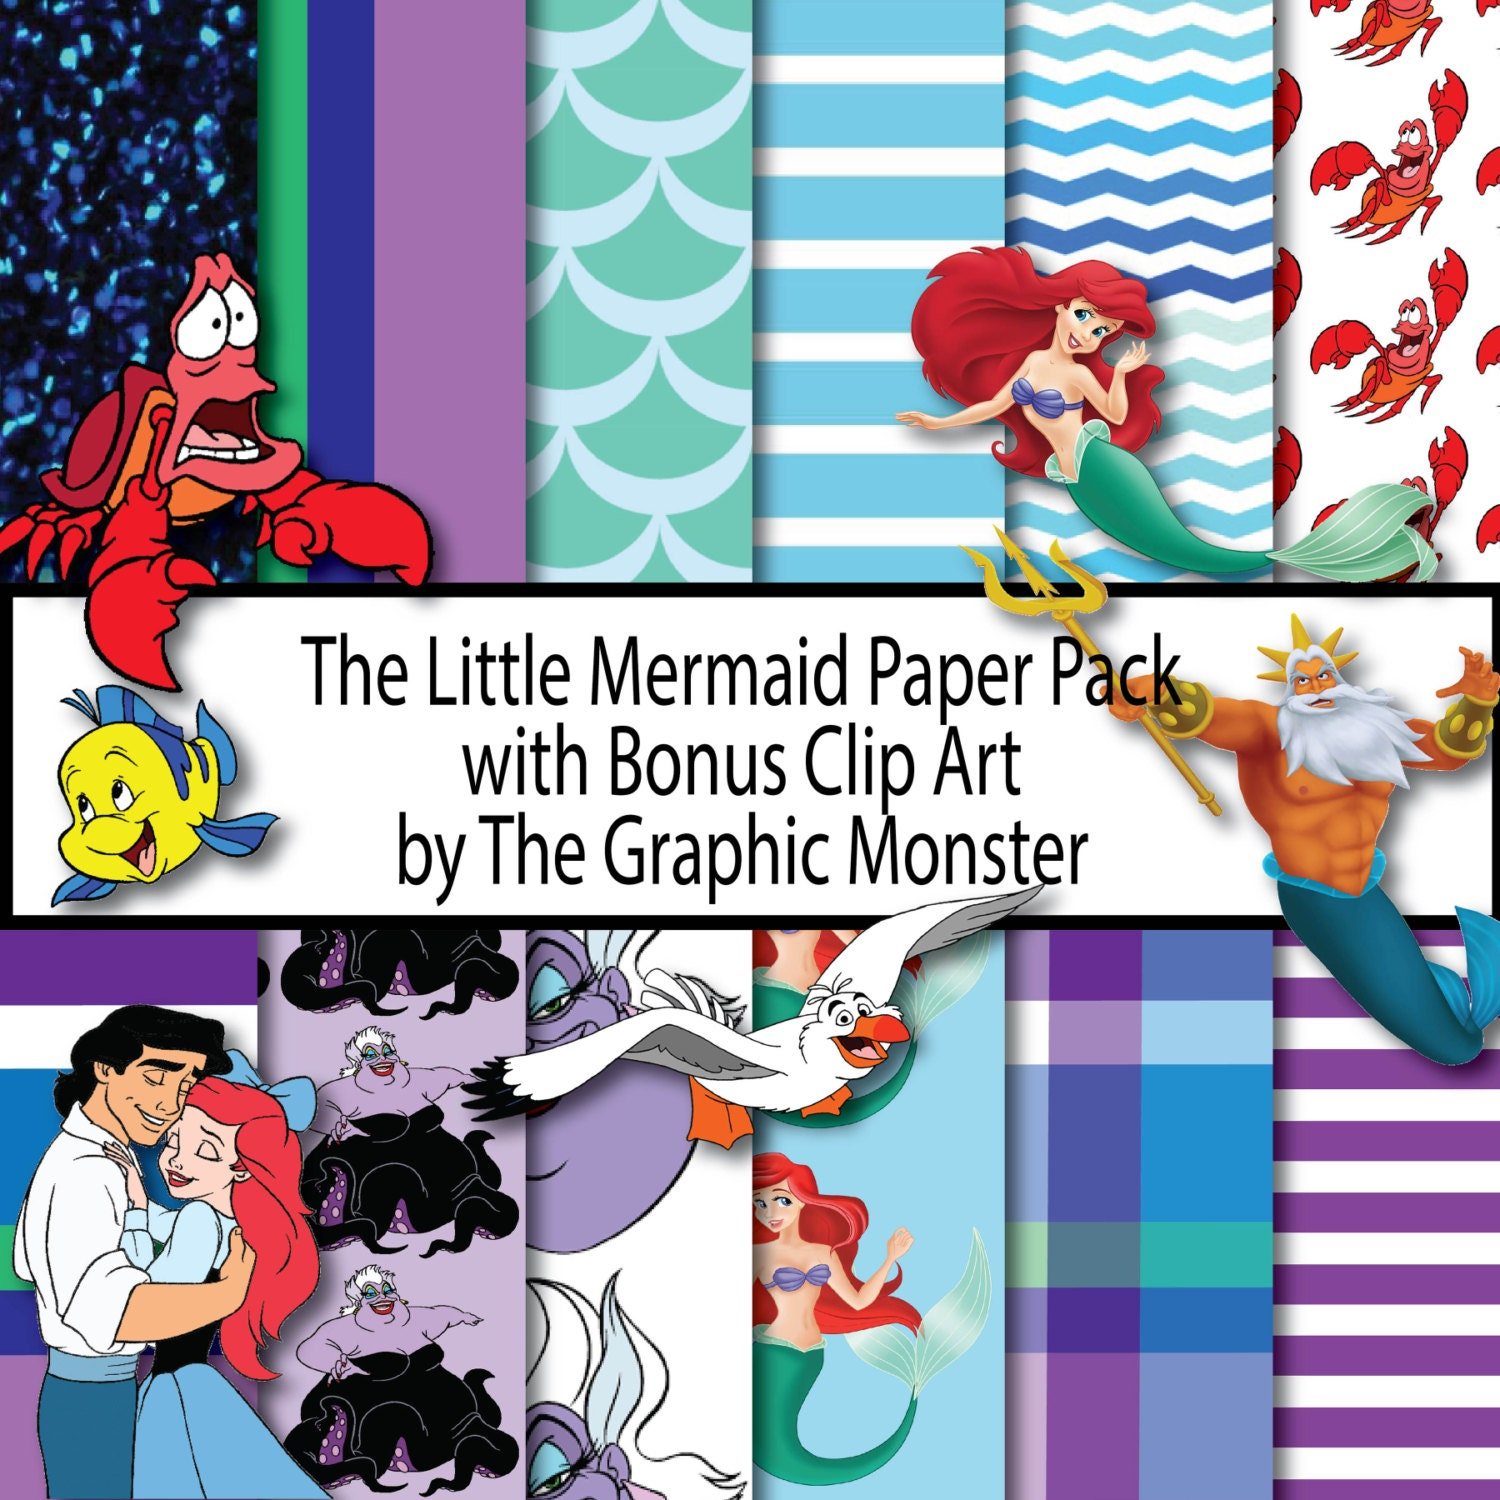 How to scrapbook disney - This Is A Digital File